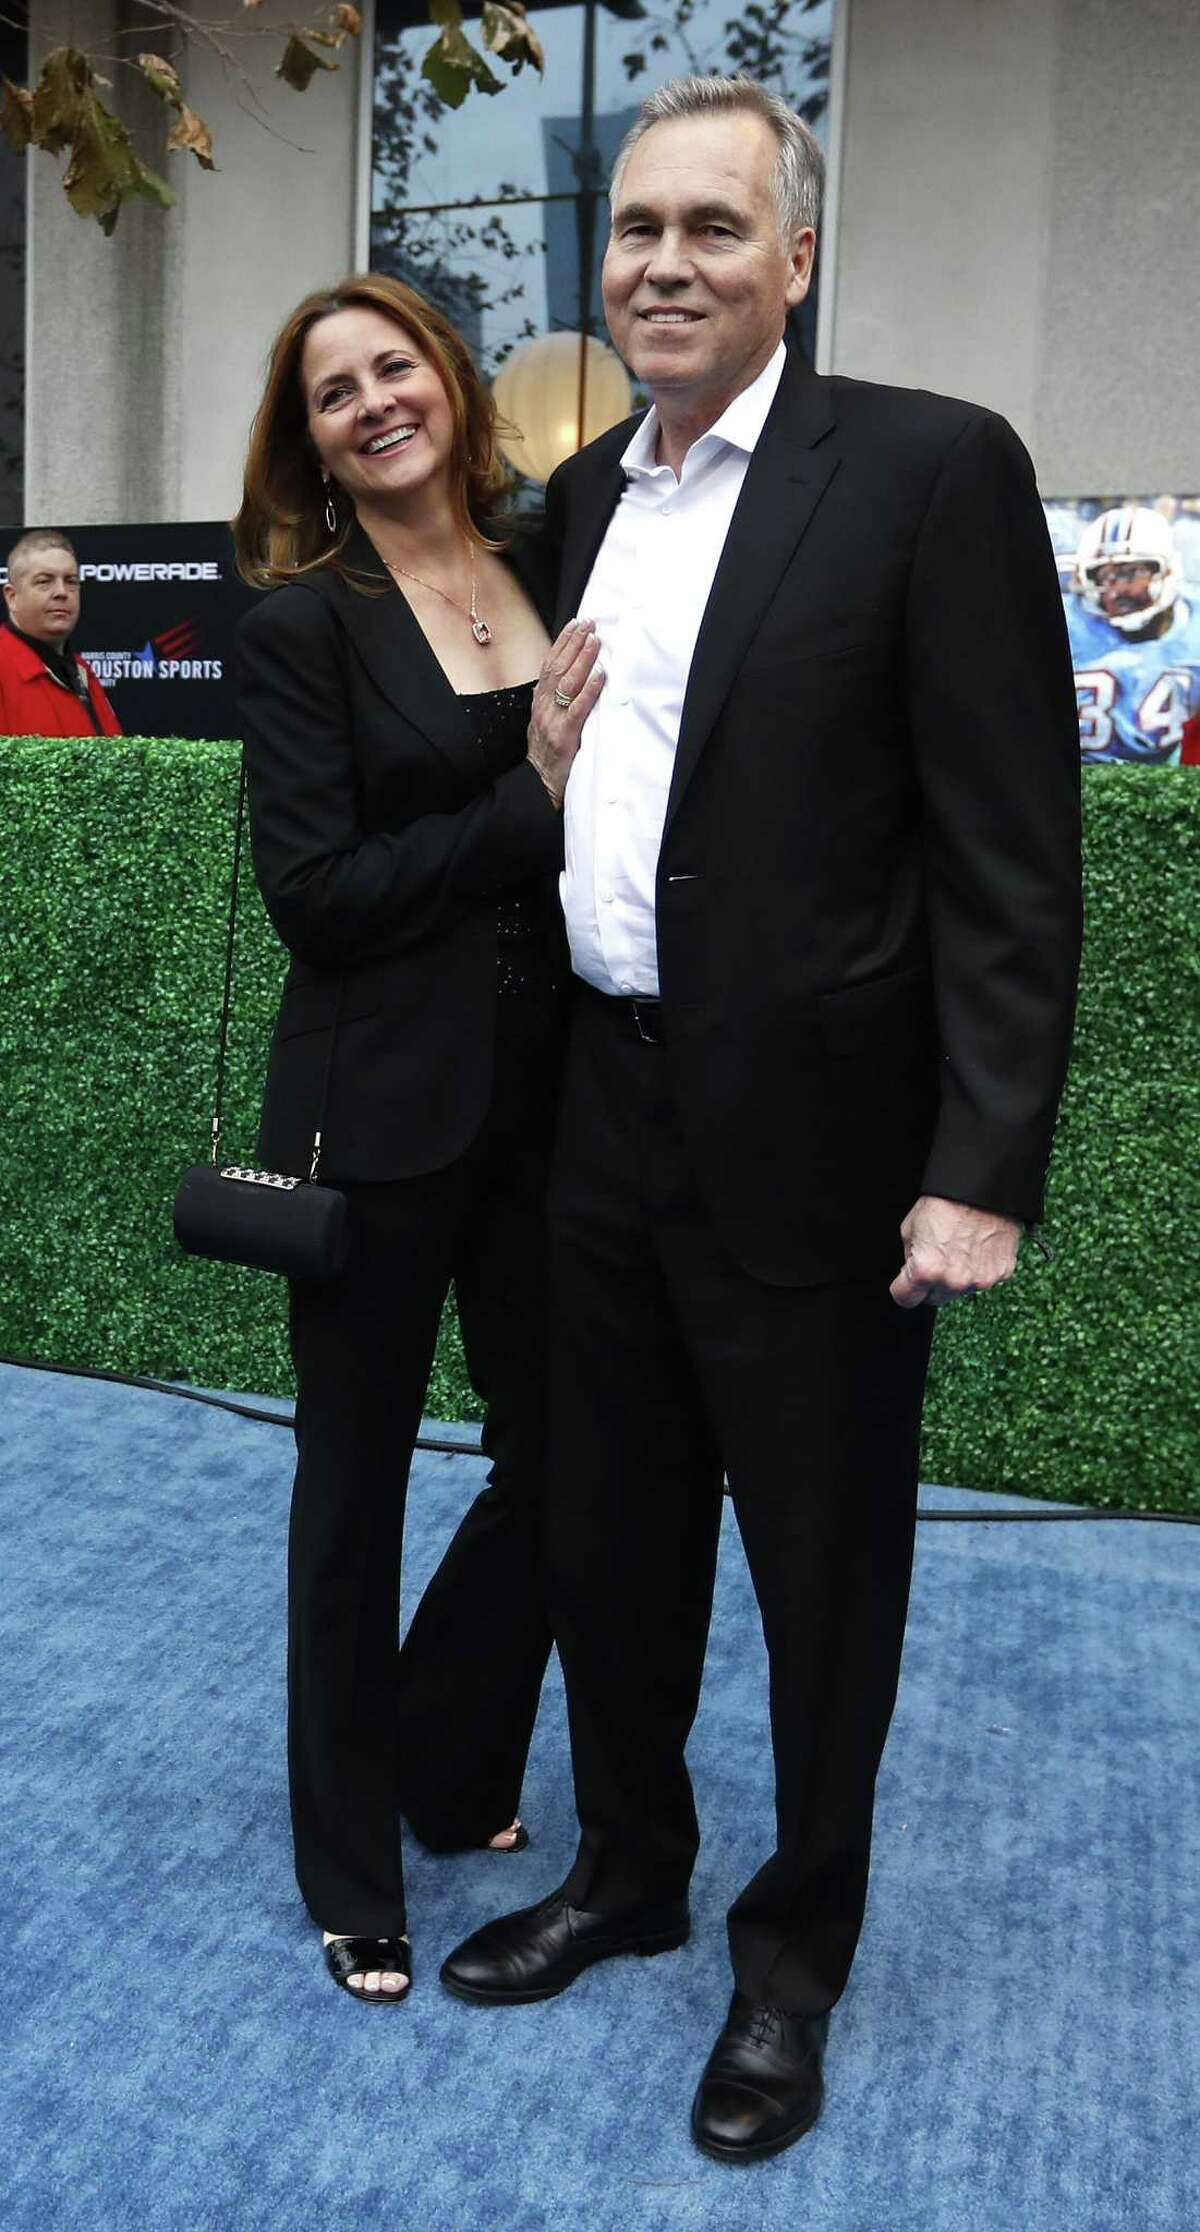 Rockets head coach Mike D'Antoni with his wife, Laurel, on the blue carpet before the start of the Houston Sports Awards at the Hilton Americas, Thursday, Feb. 8, 2018, in Houston. ( Karen Warren / Houston Chronicle )